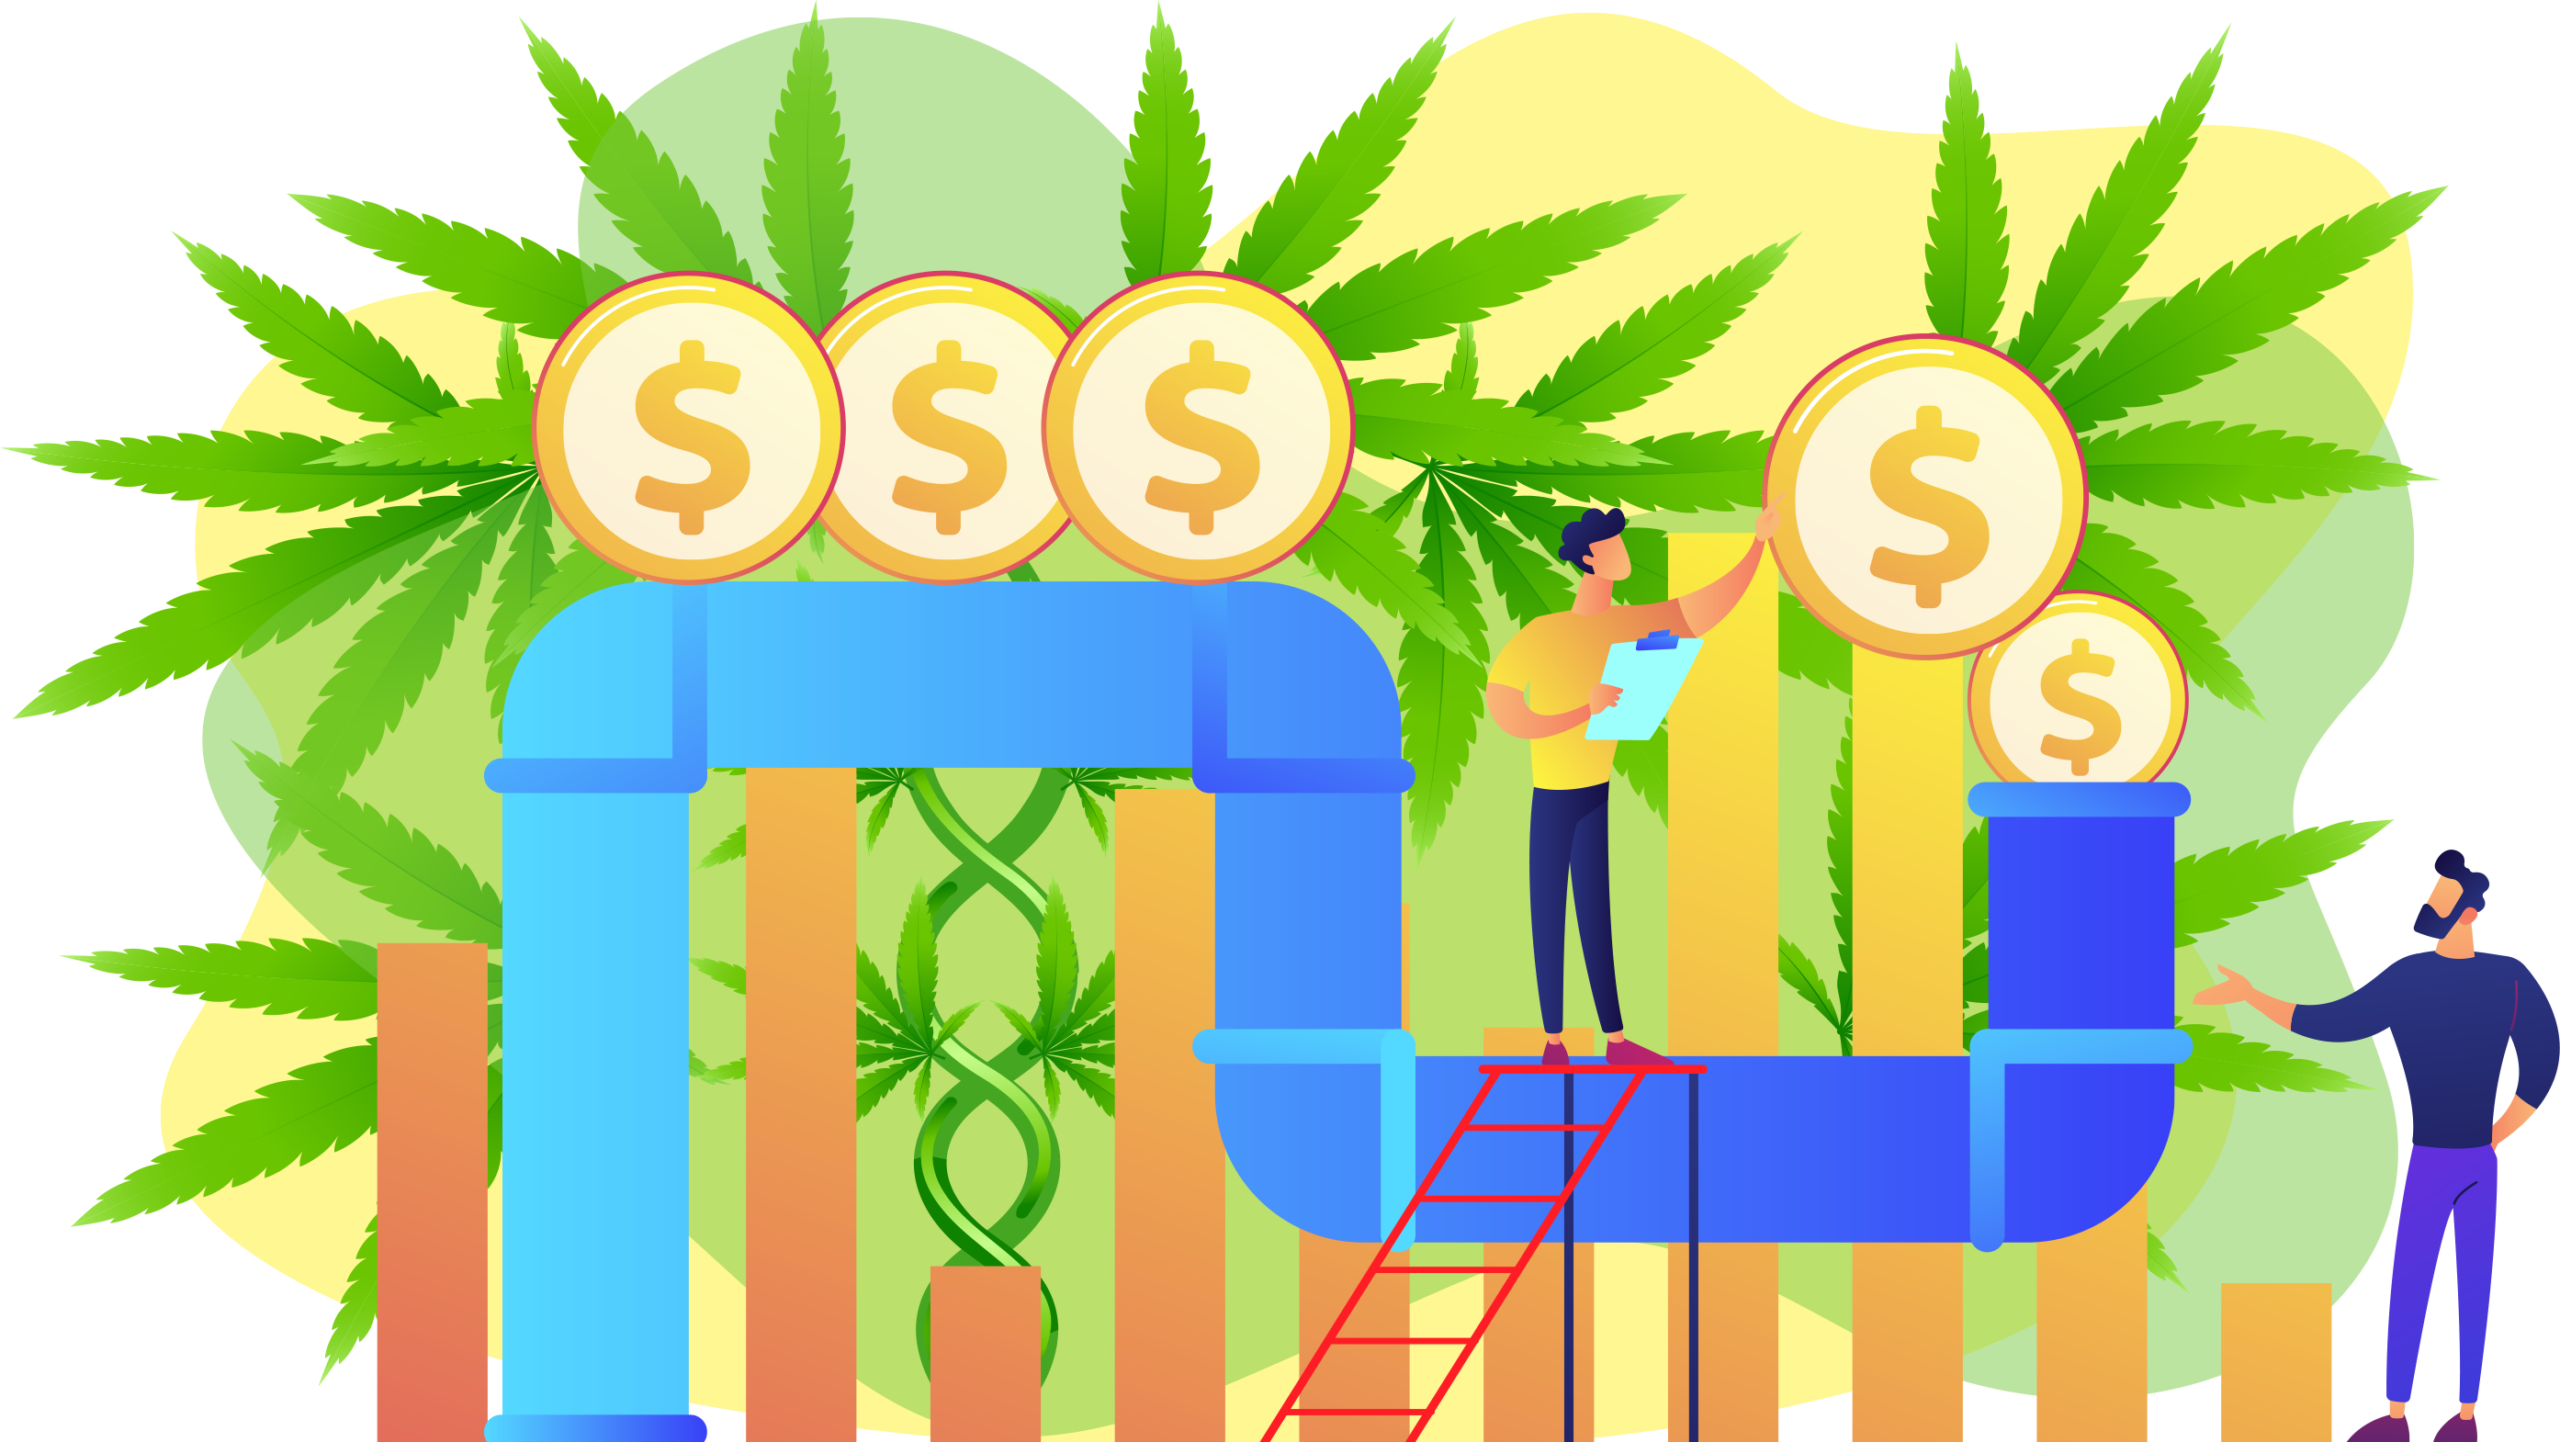 Illustration of a pipeline with cannabis leaves in the background